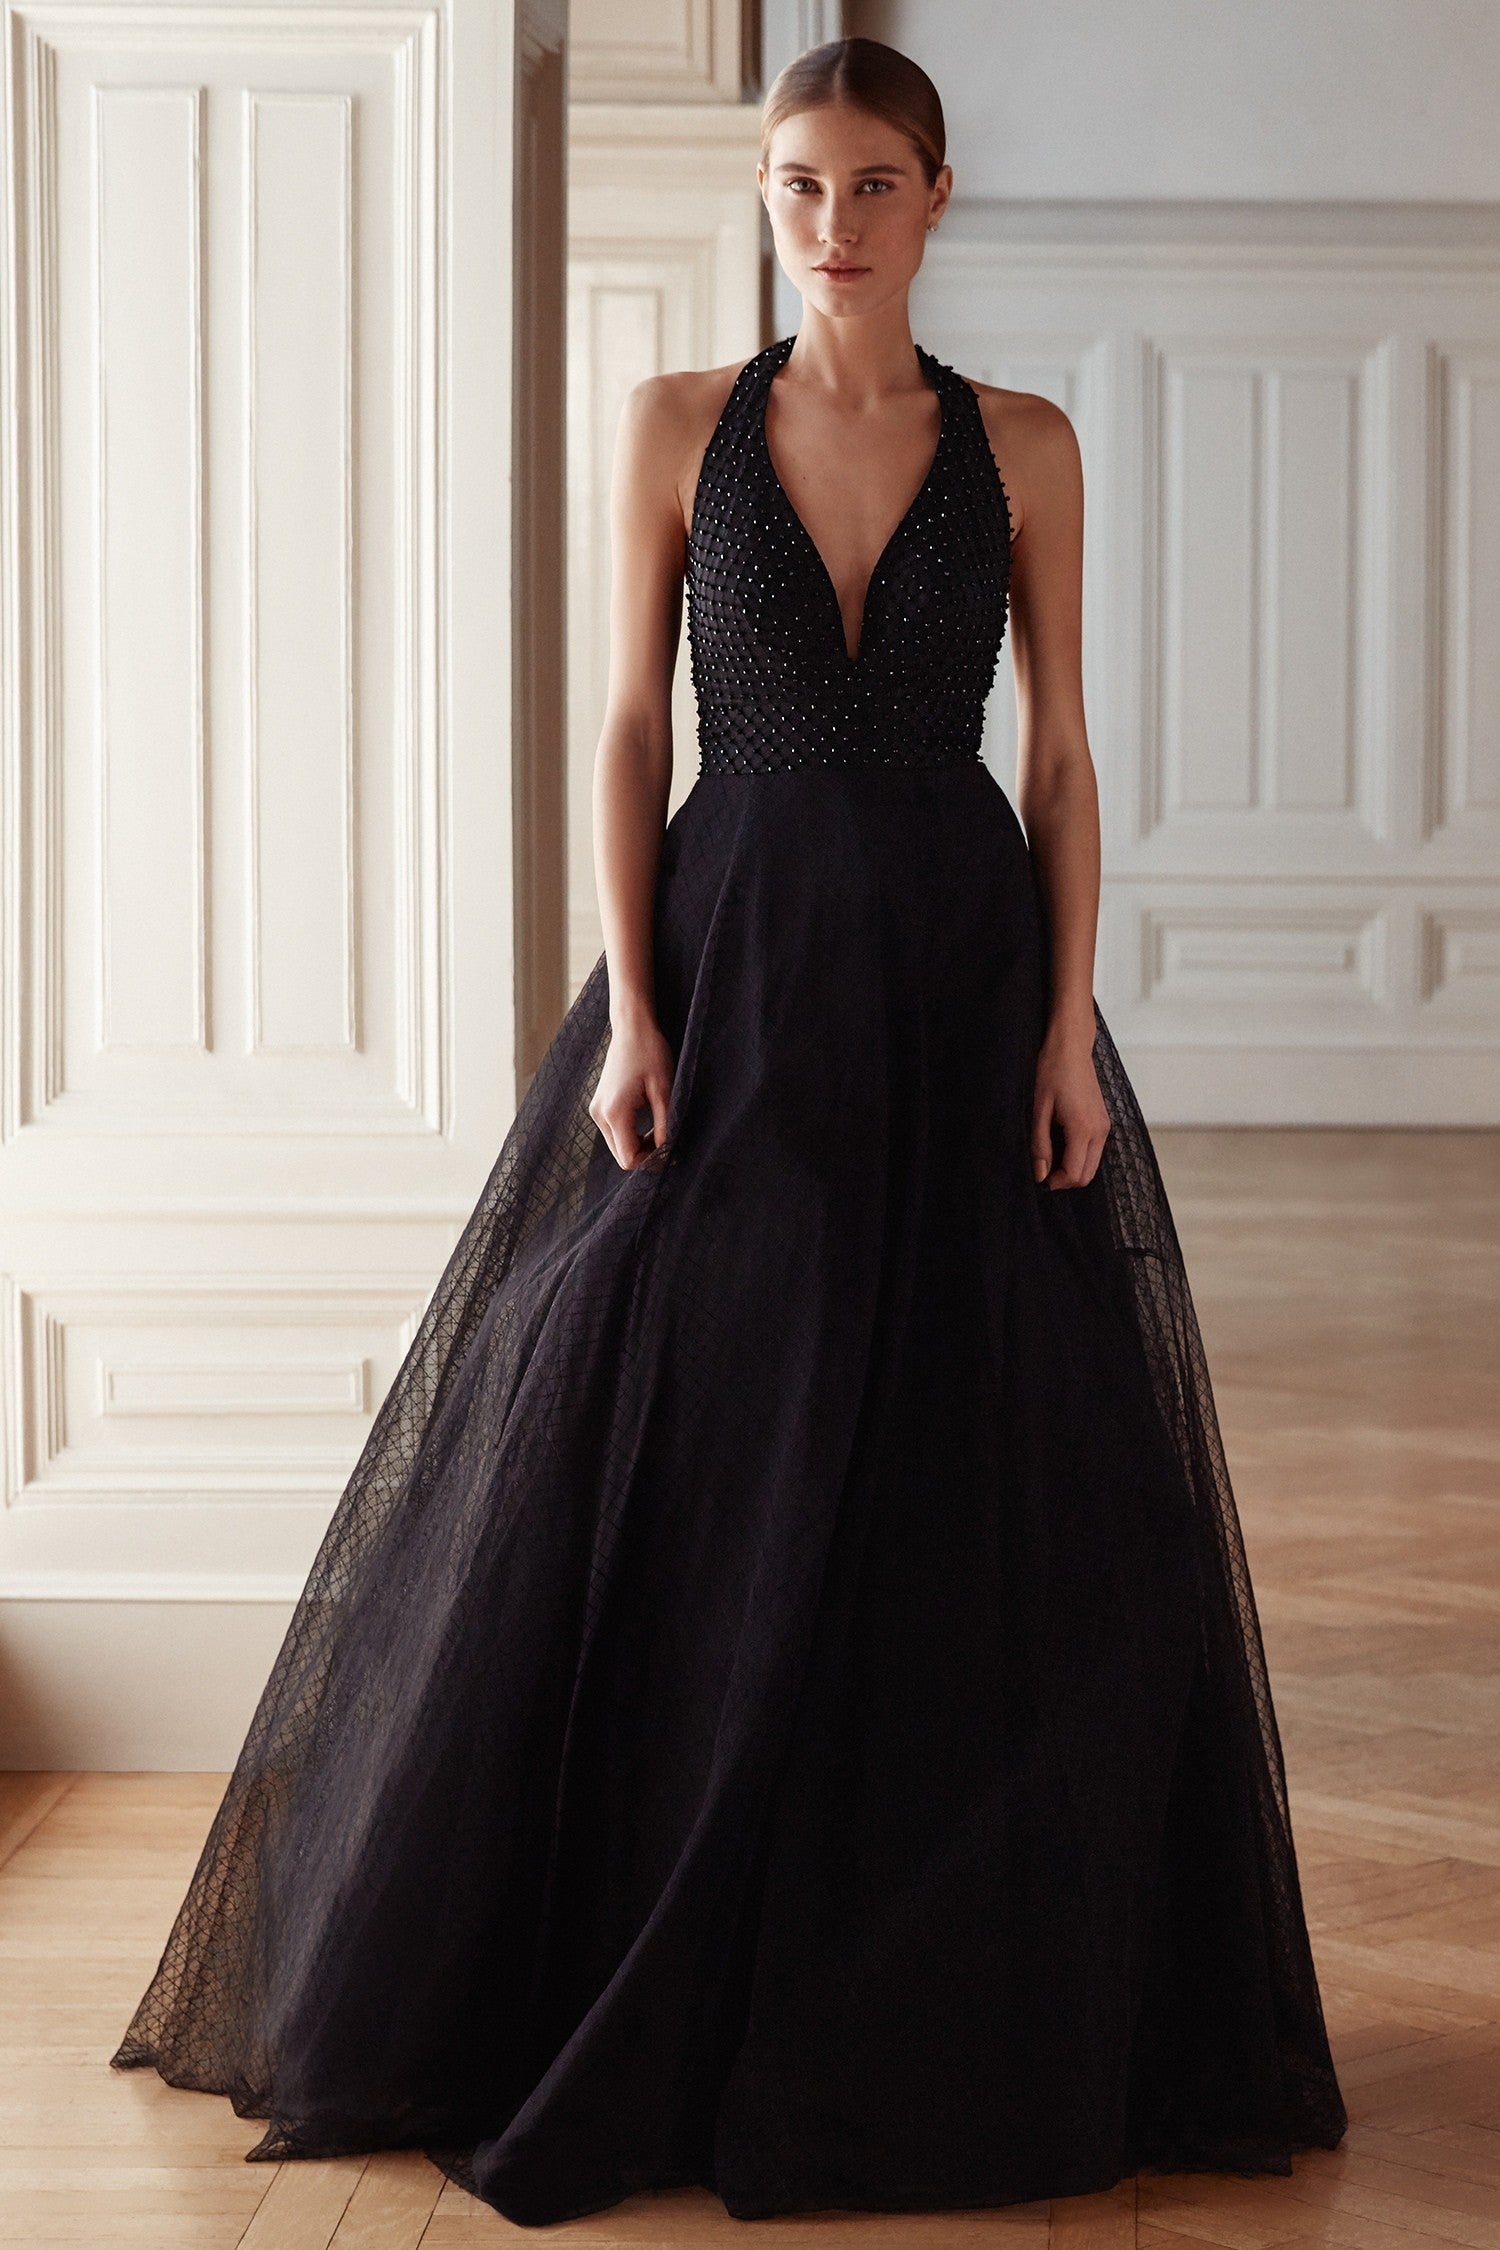 Low v-neck formal gown